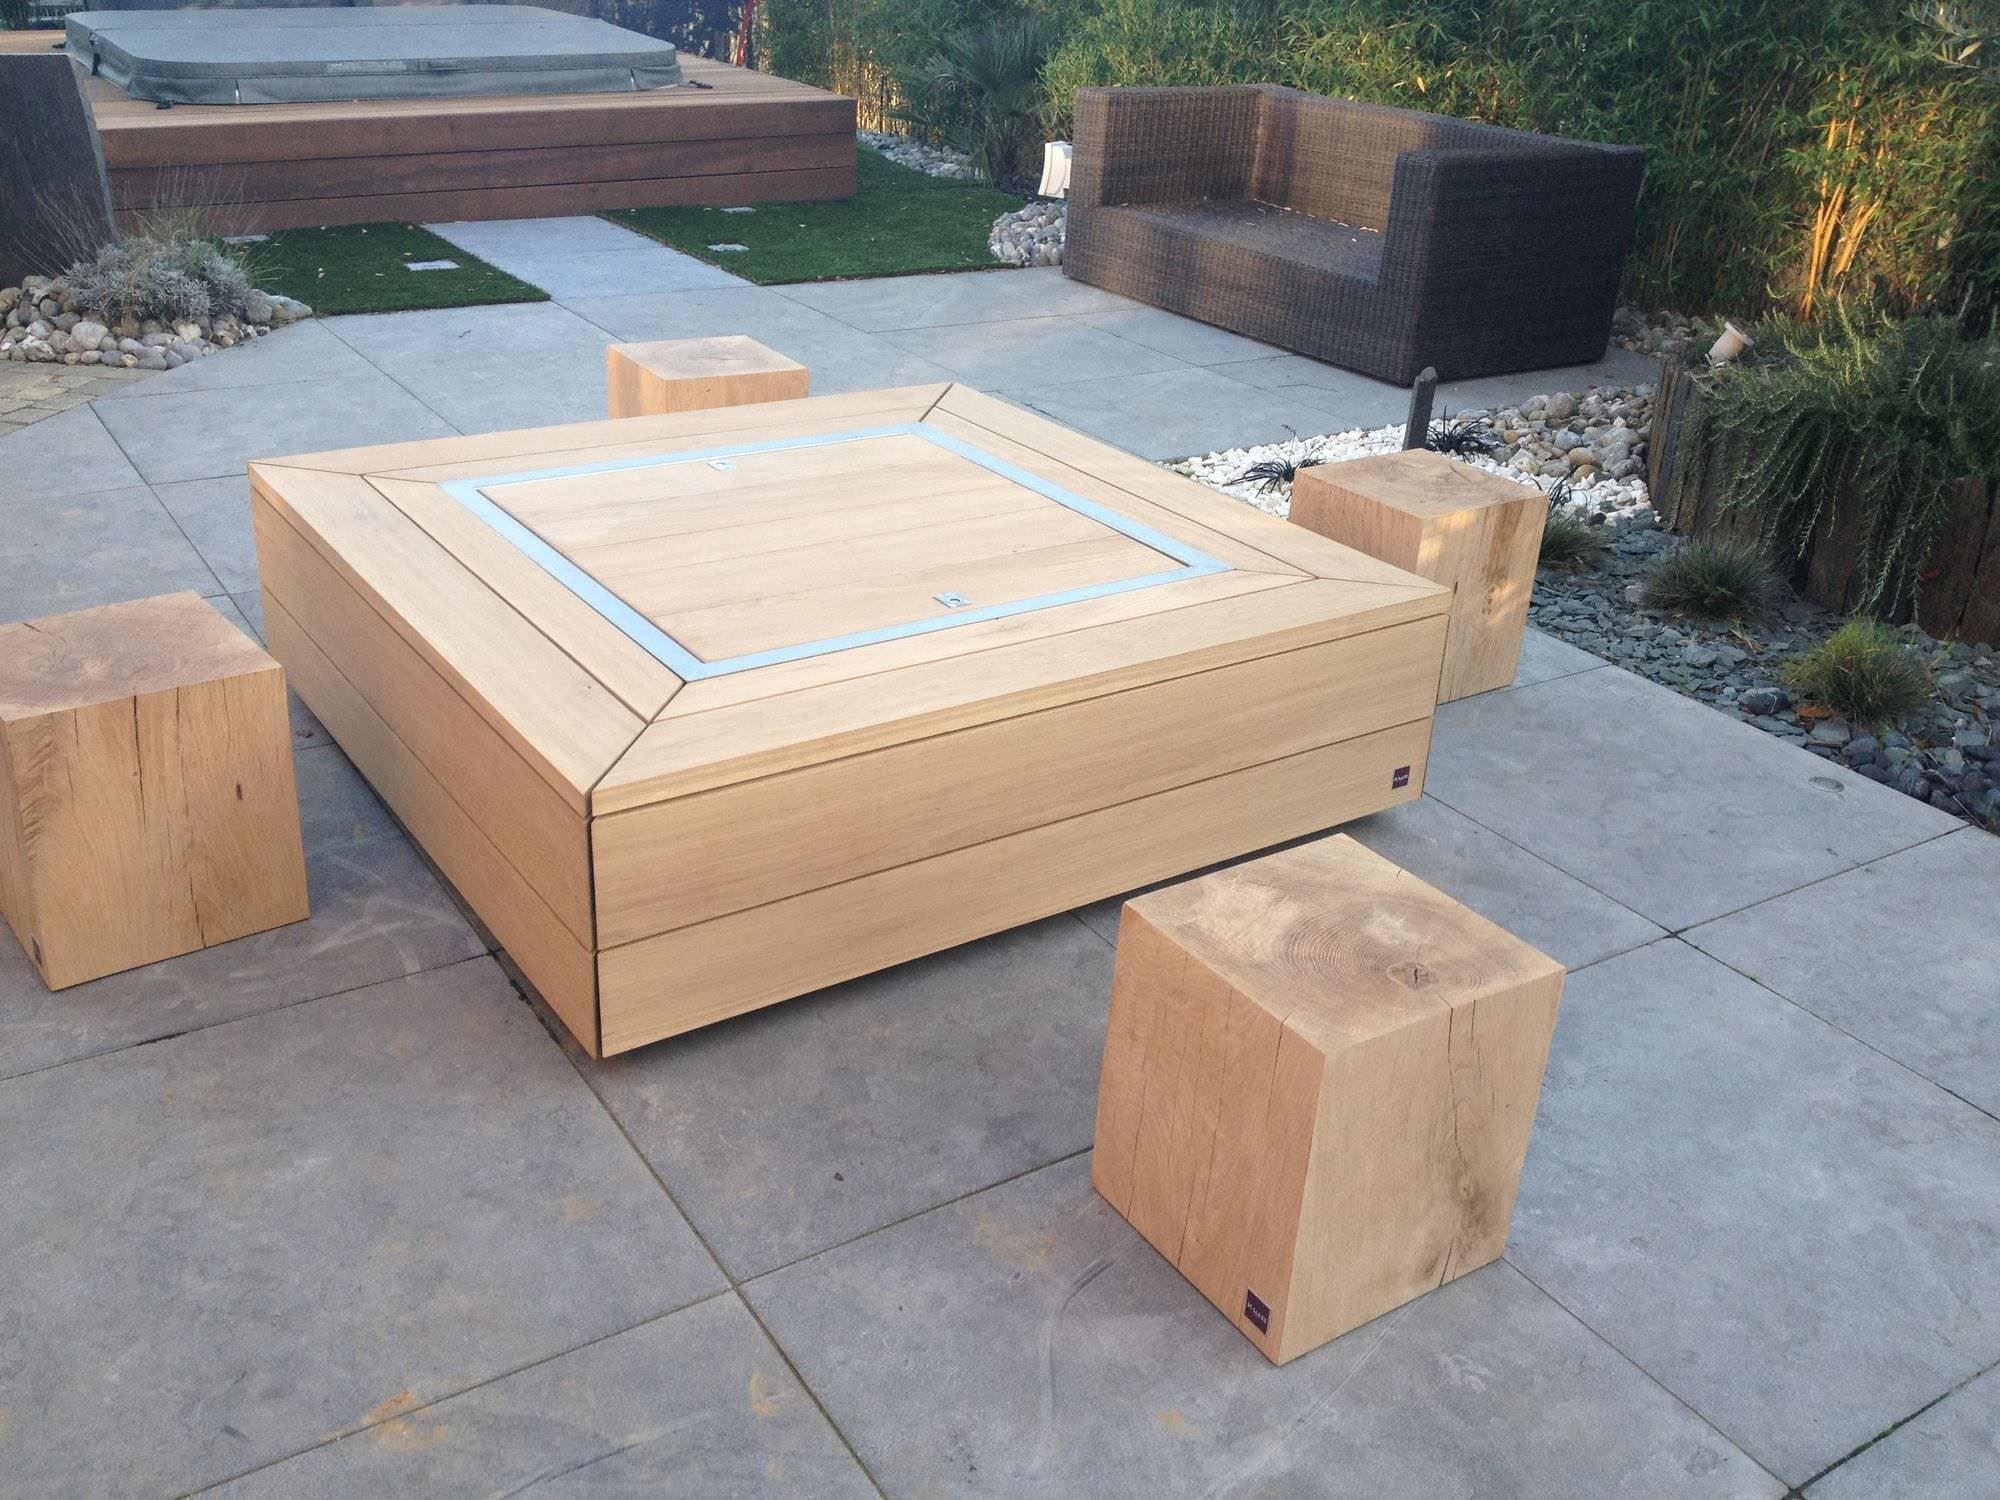 Contemporary Coffee Table / Wooden / Square / Garden - Kub inside Wooden Garden Coffee Tables (Image 7 of 30)